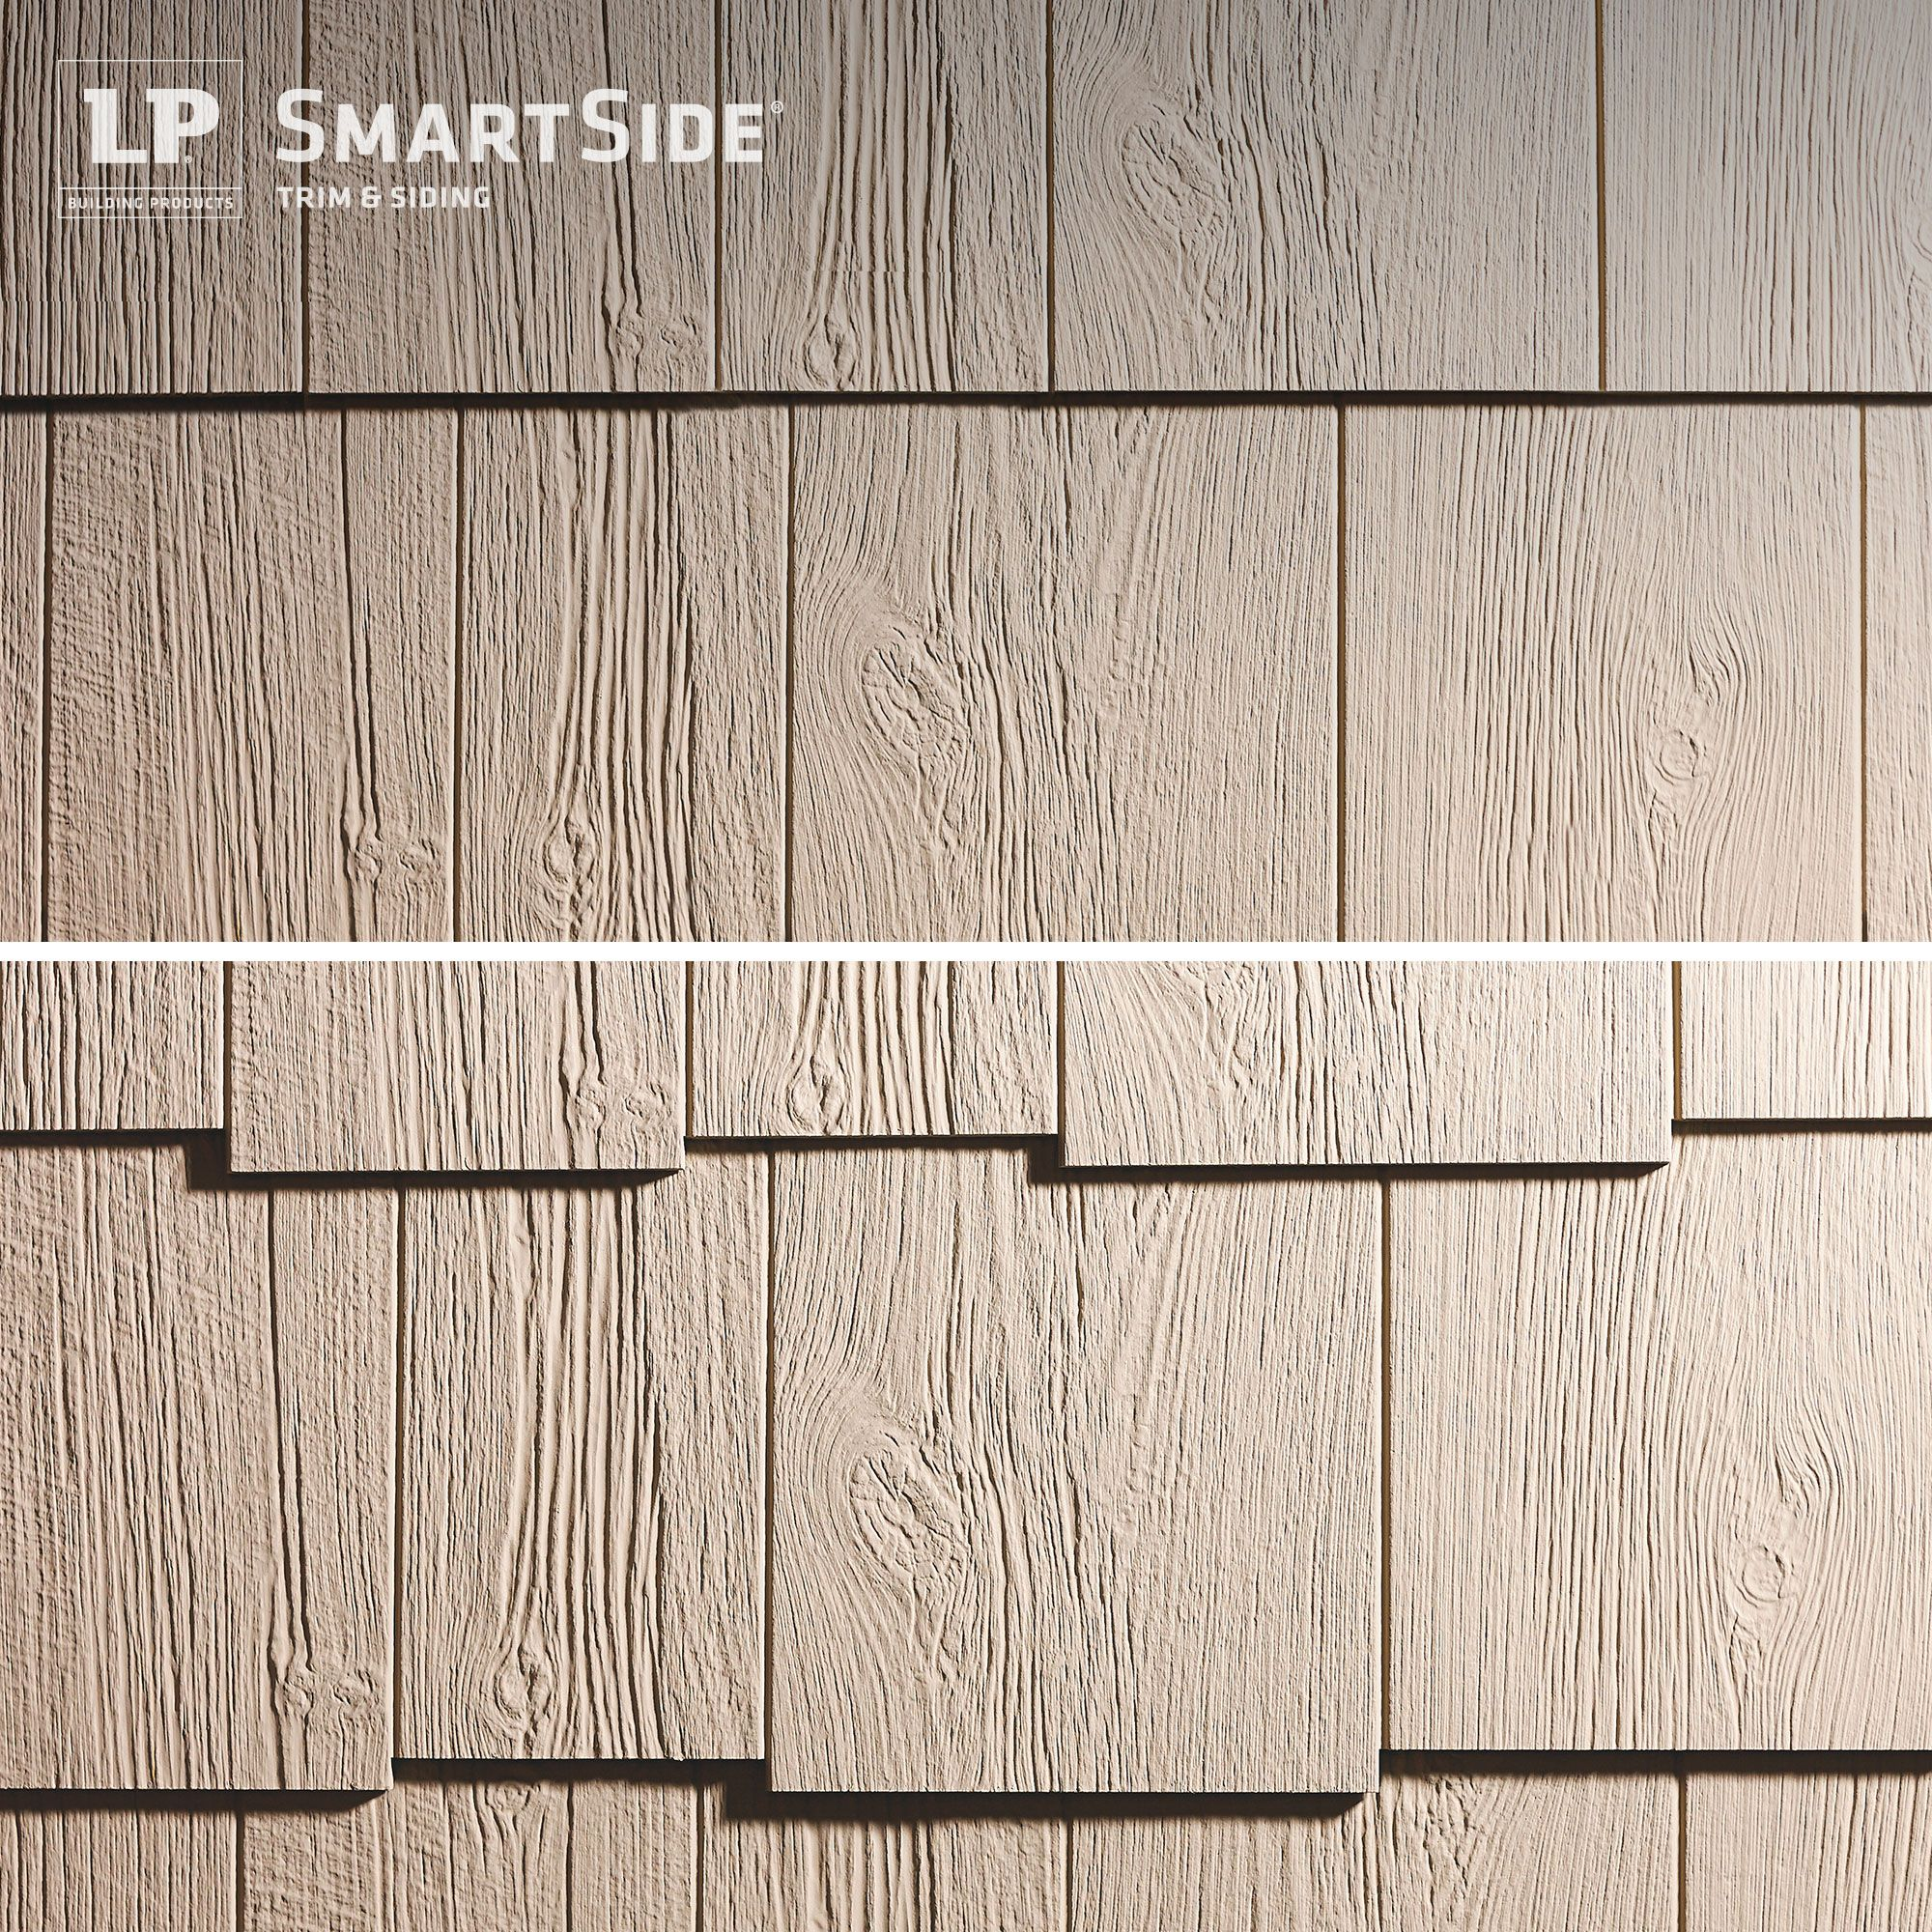 Lp Smartside Cedar Shakes Can Be Used To Create Either A